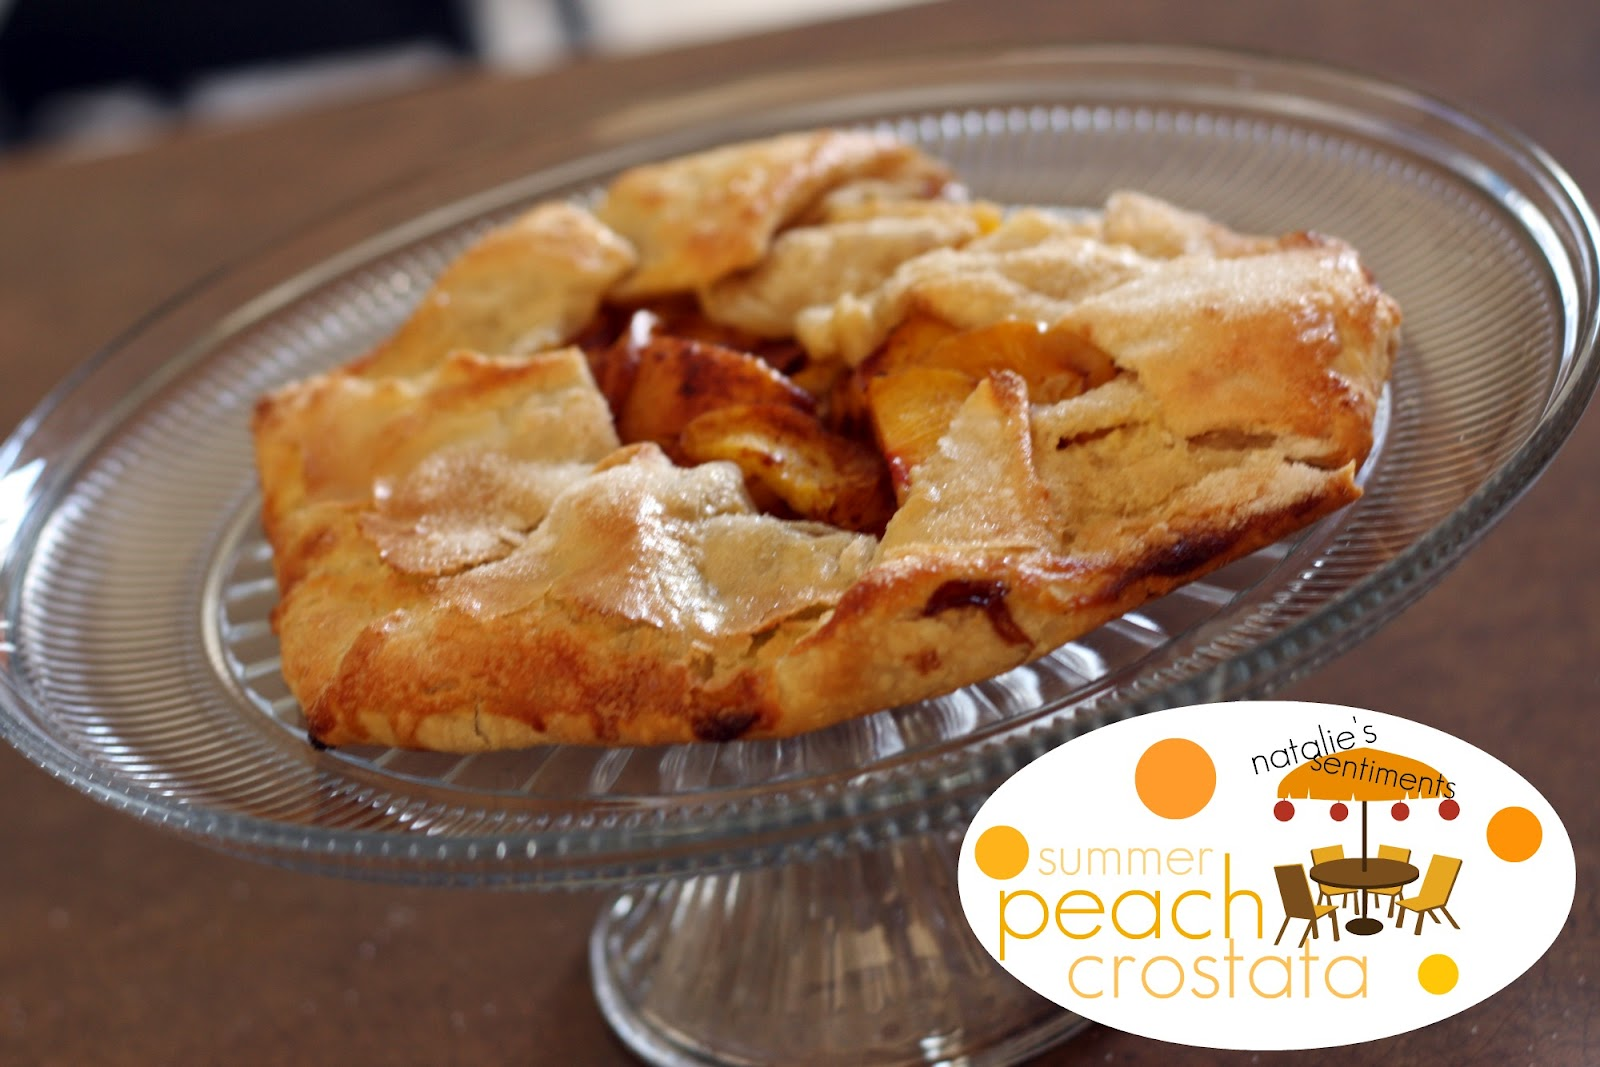 natalie's sentiments: Summer Peach Crostata